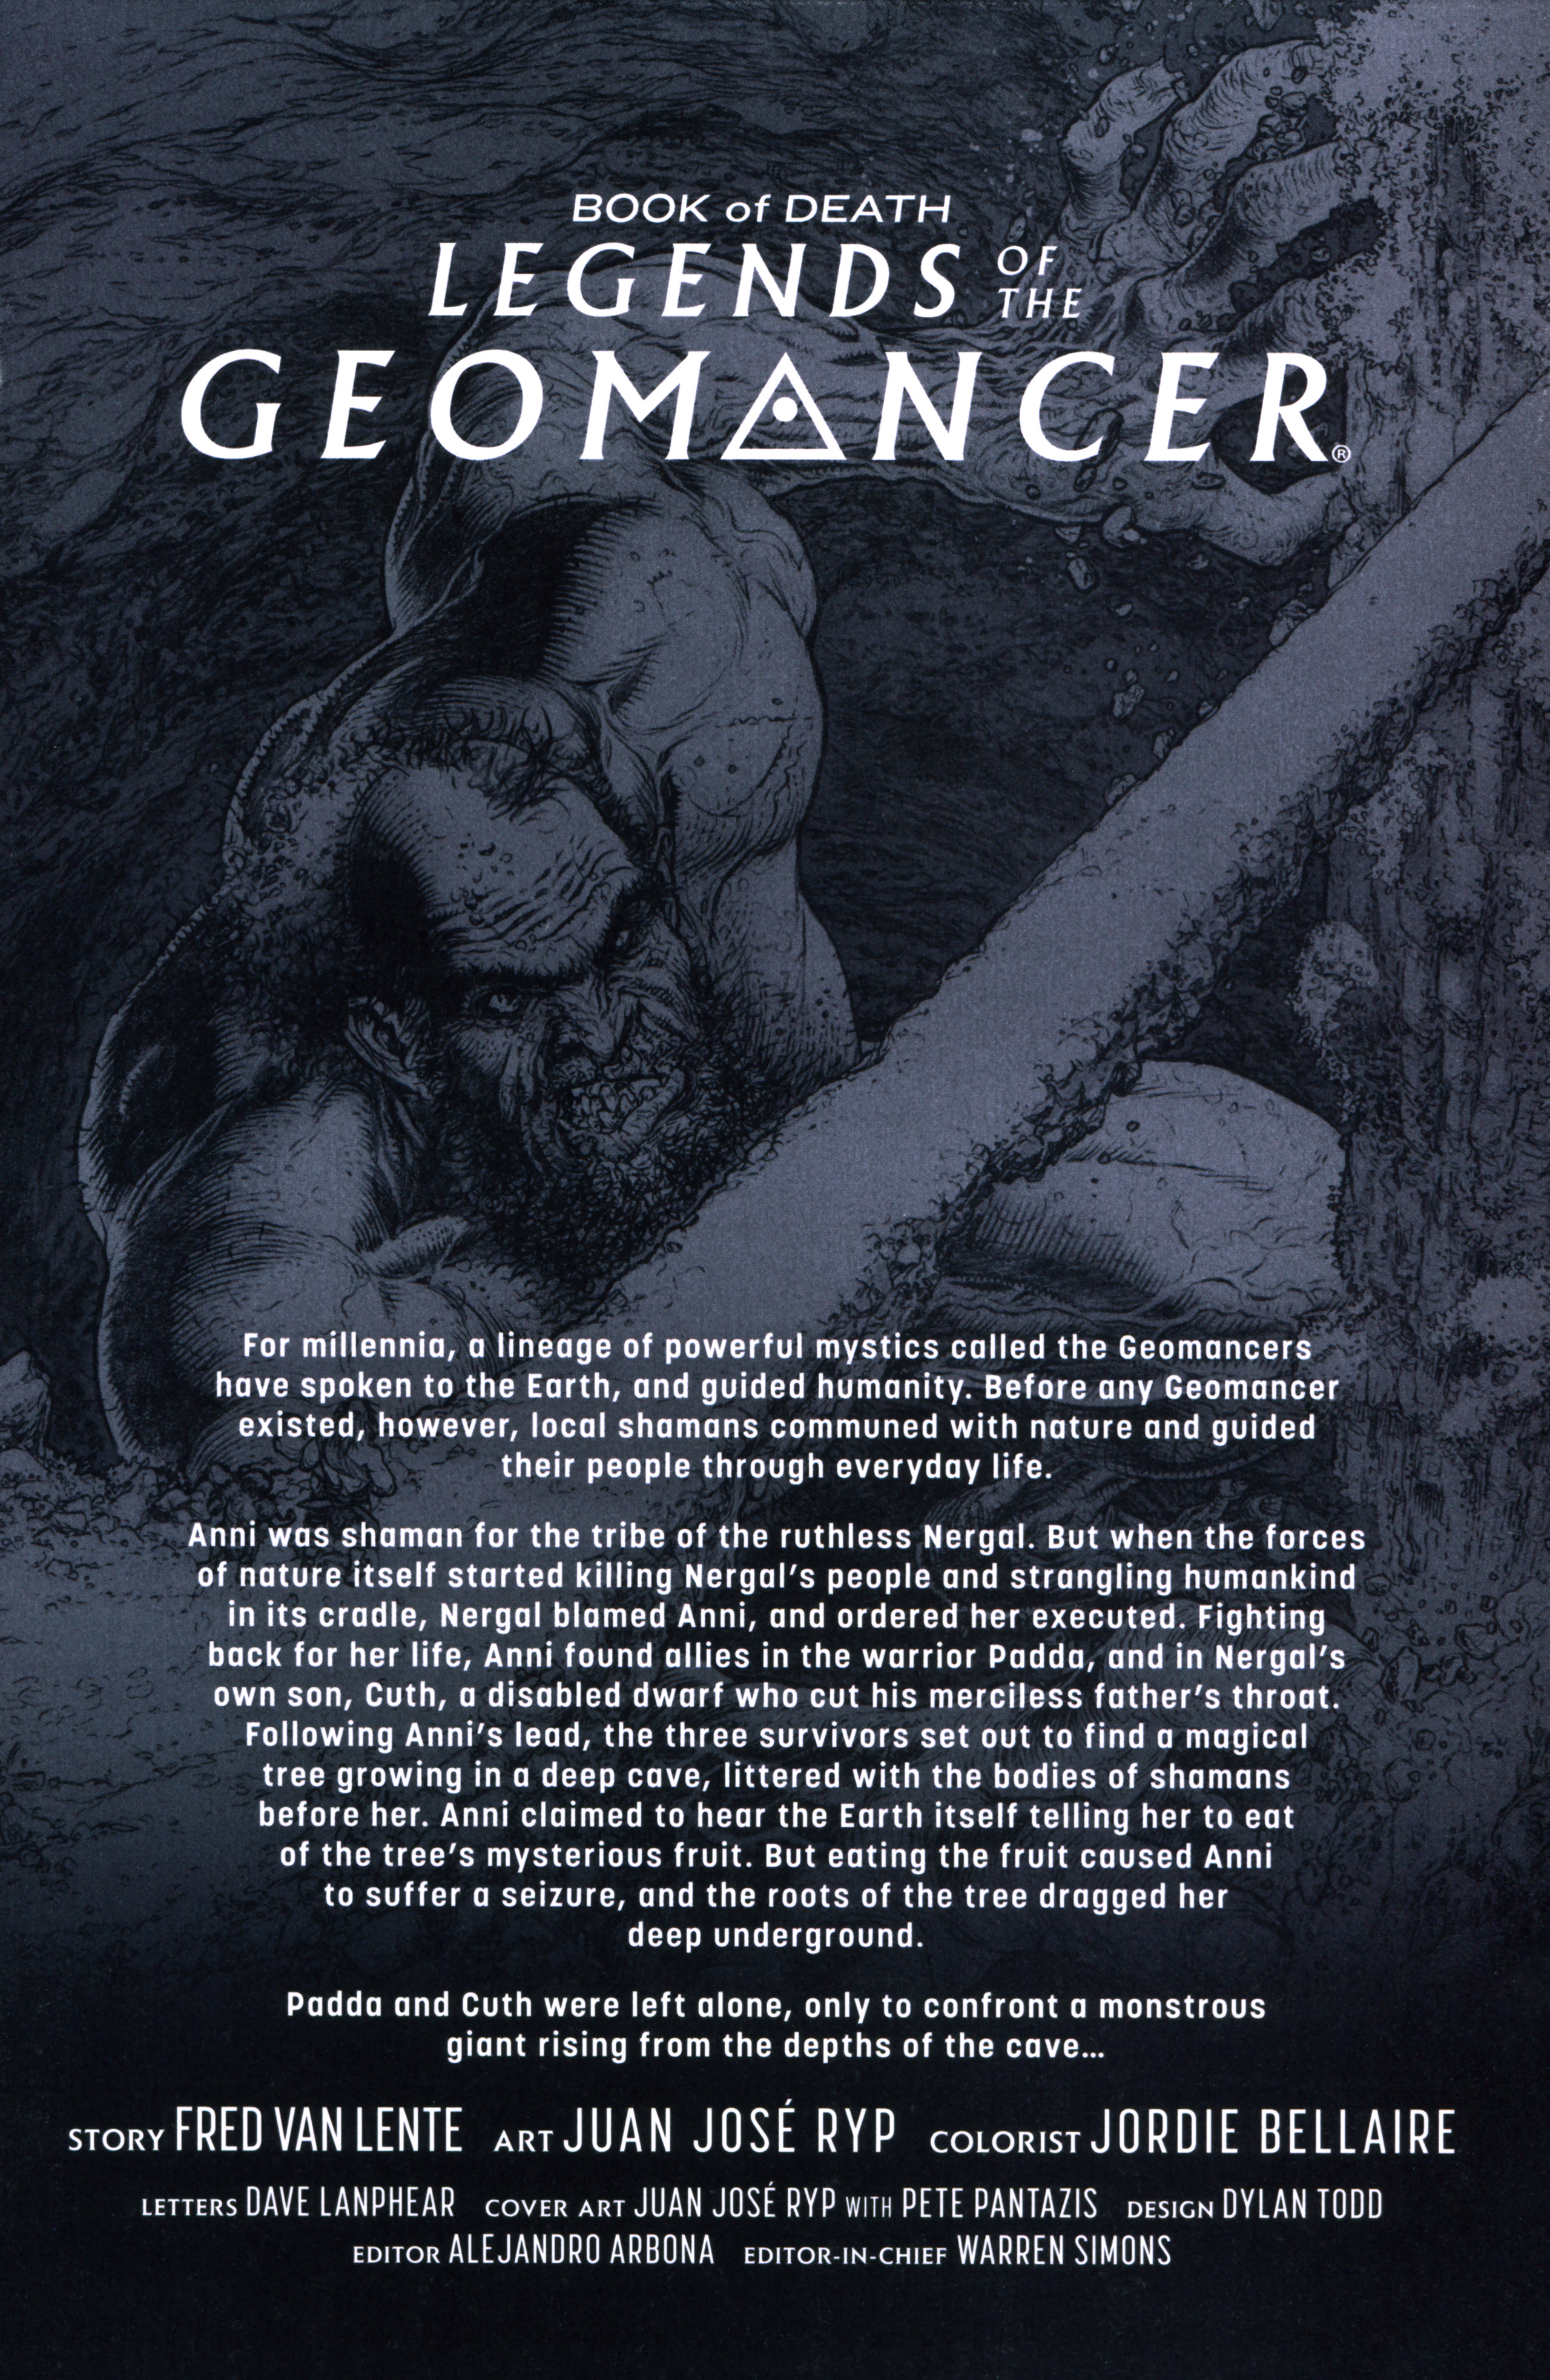 Read online Book of Death: Legends of the Geomancer comic -  Issue #3 - 3